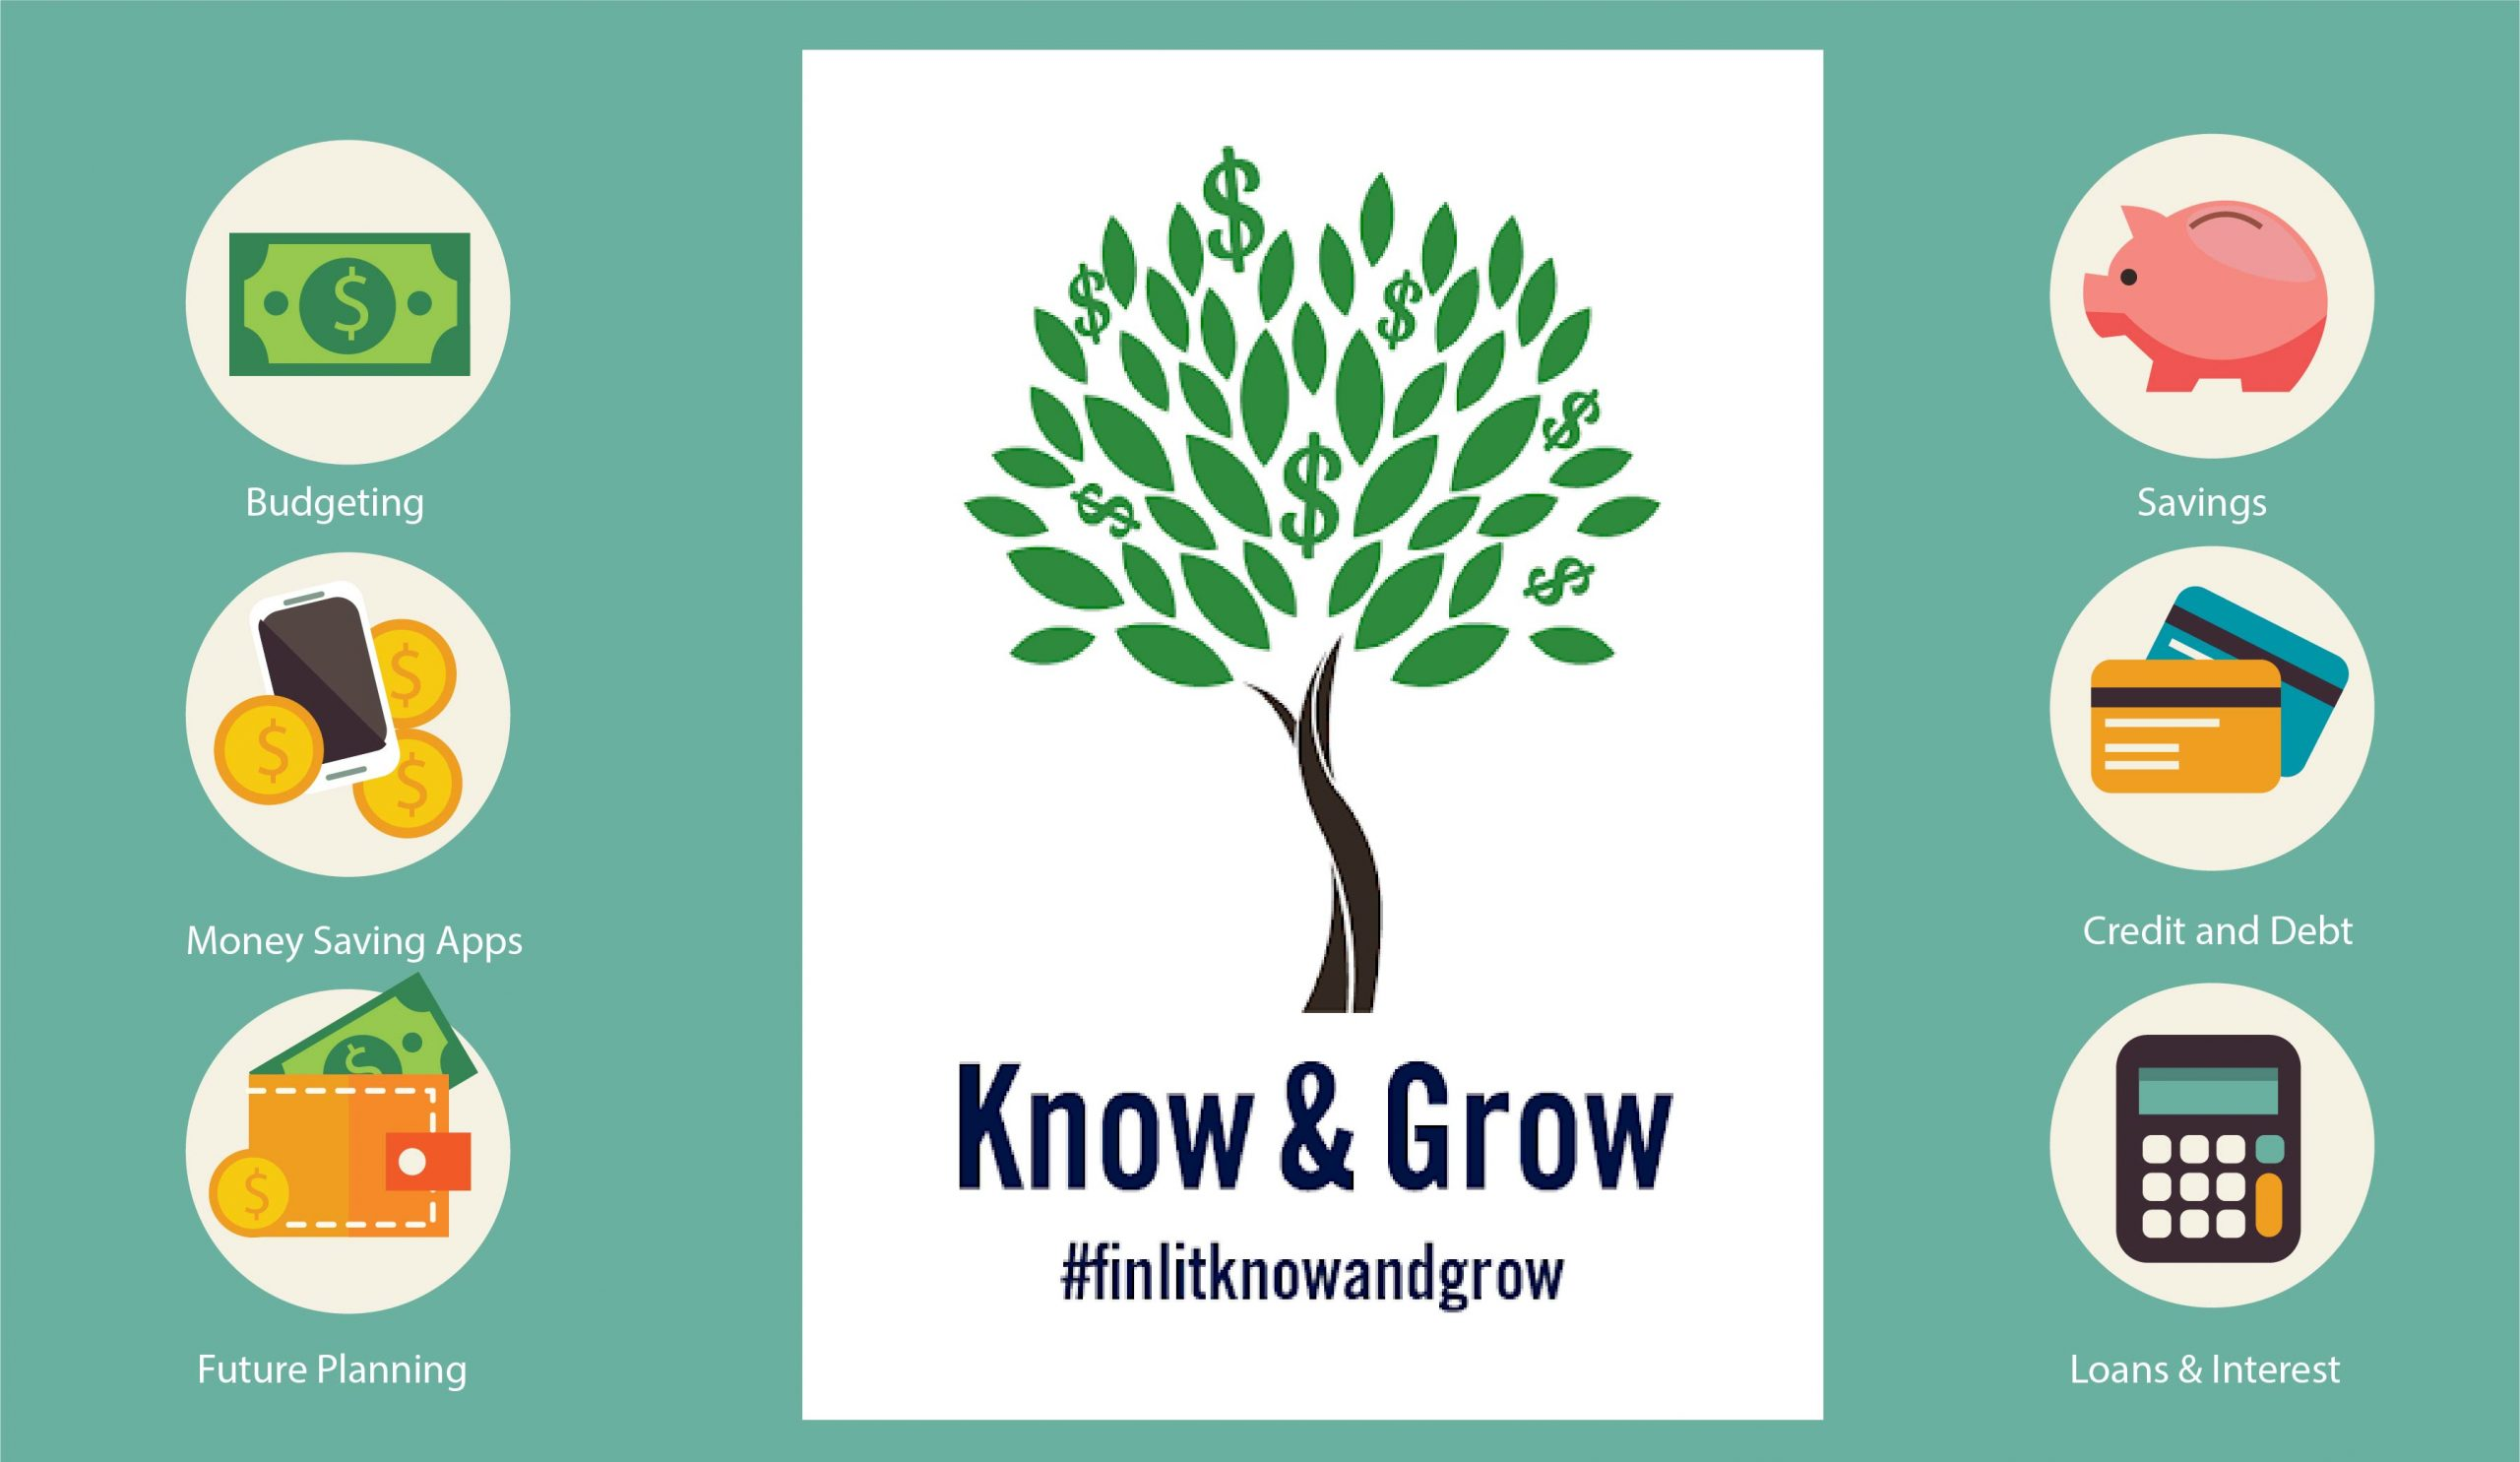 Know and Grow! Information on budgeting, money saving apps, savings, credit and debt, loans and interest, and planning for the future.  #finlitknowandgrow